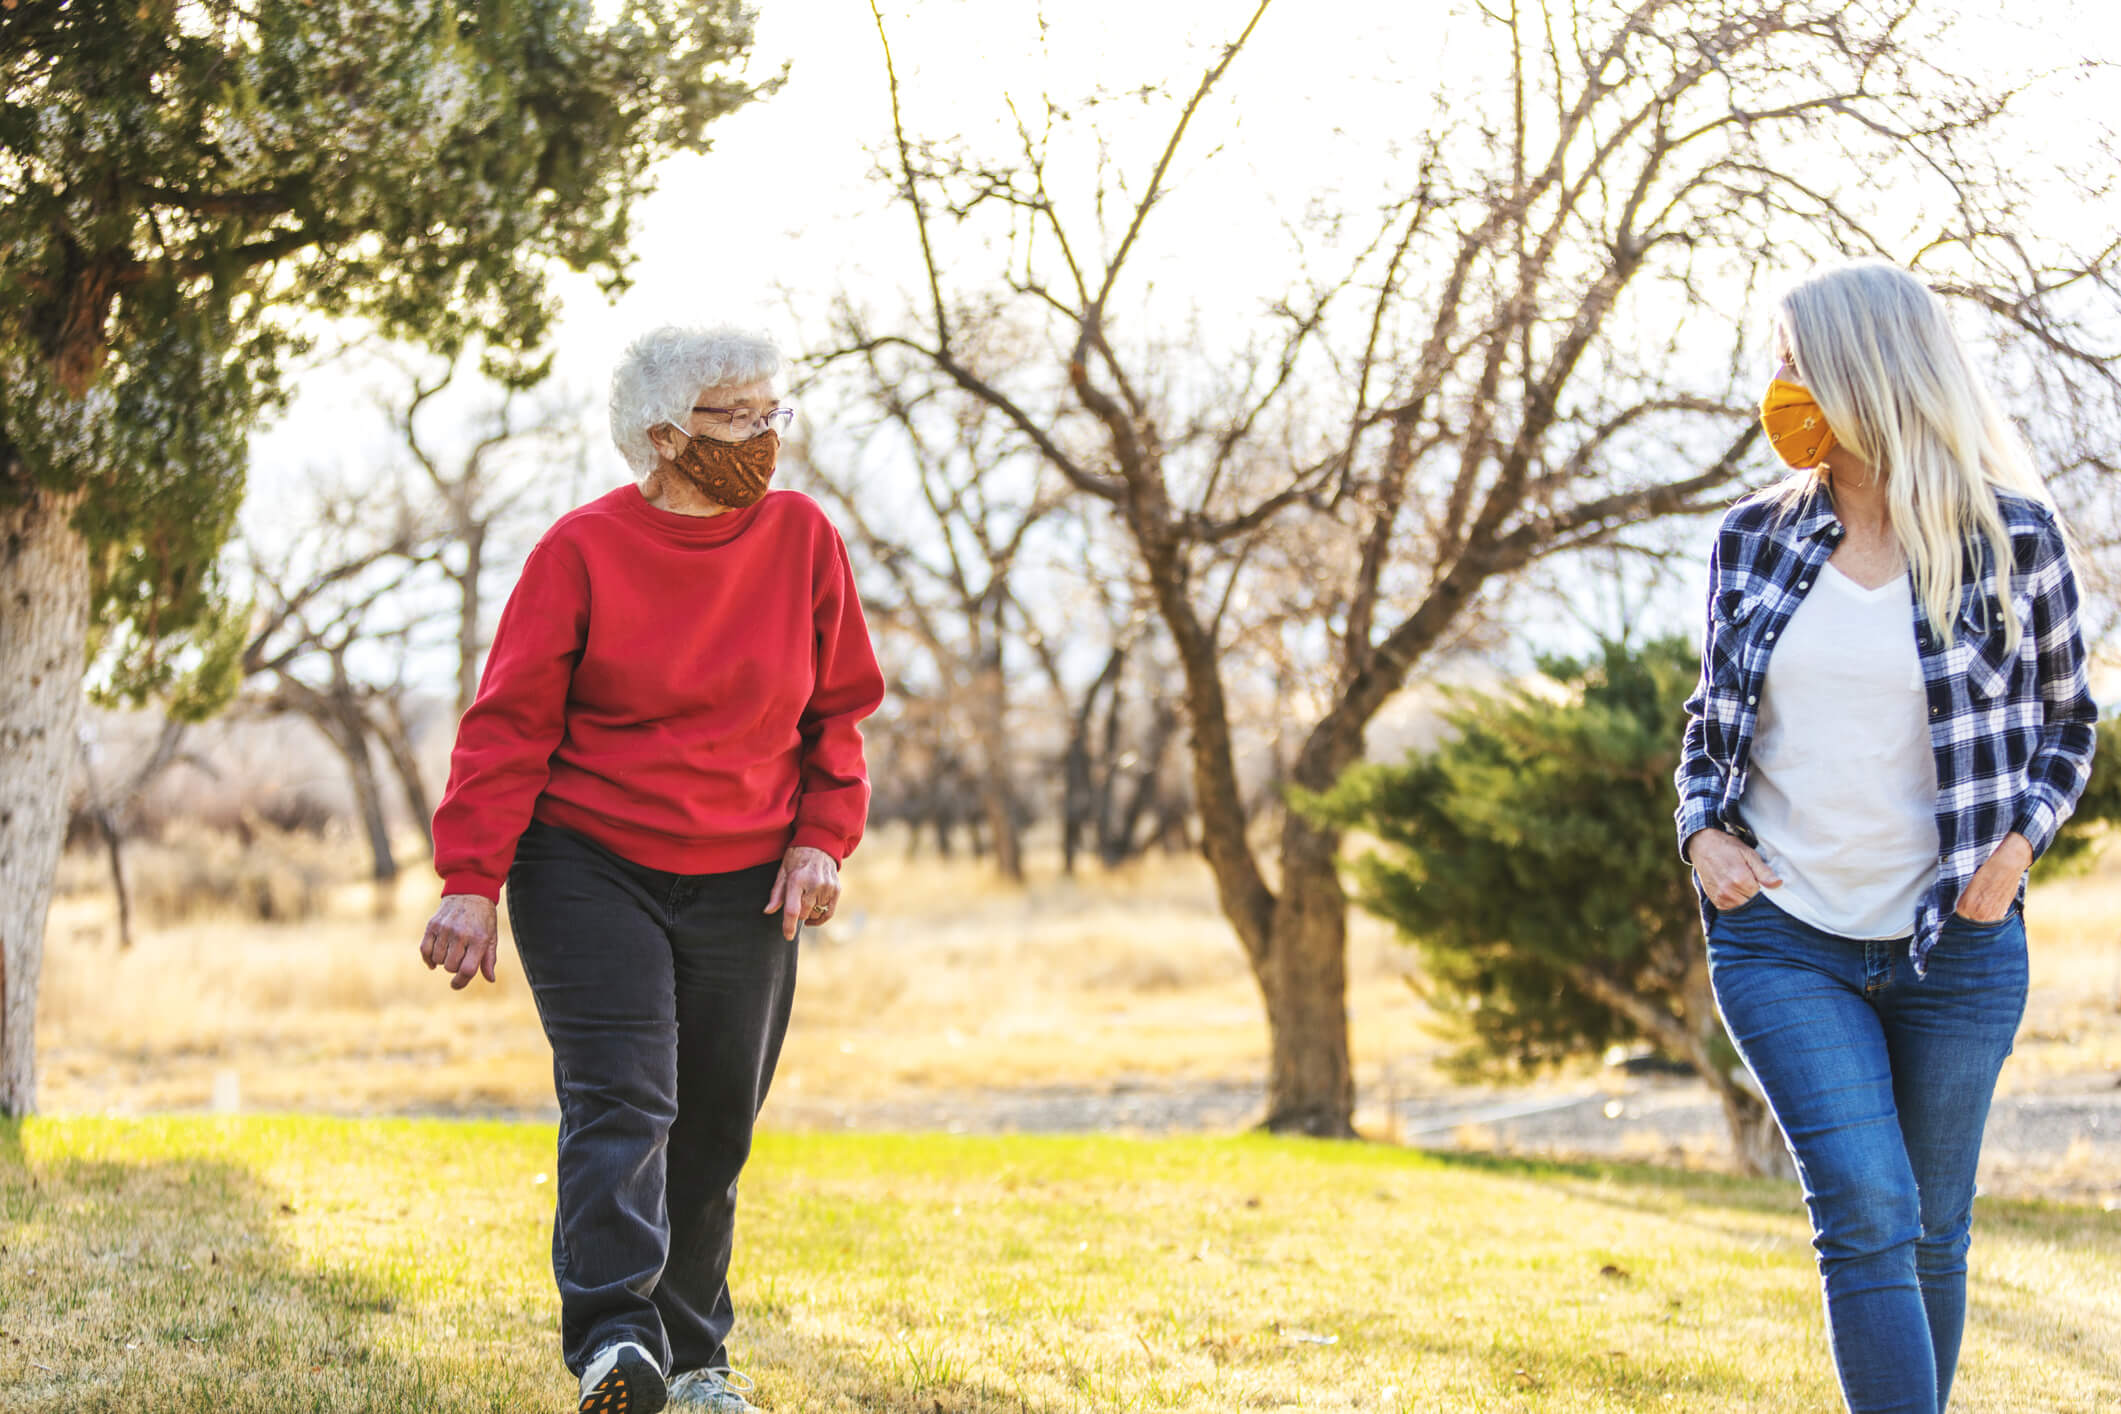 Senior mother and adult daughter walking outdoors and social distancing while wearing masks.